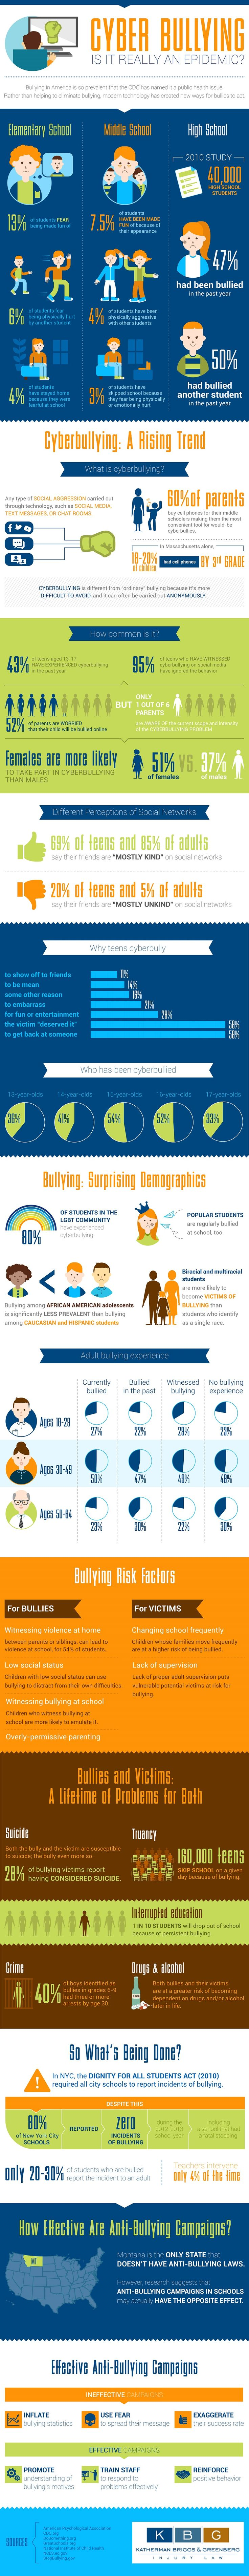 Cyber bullying statistics are highlighted in this infographic.